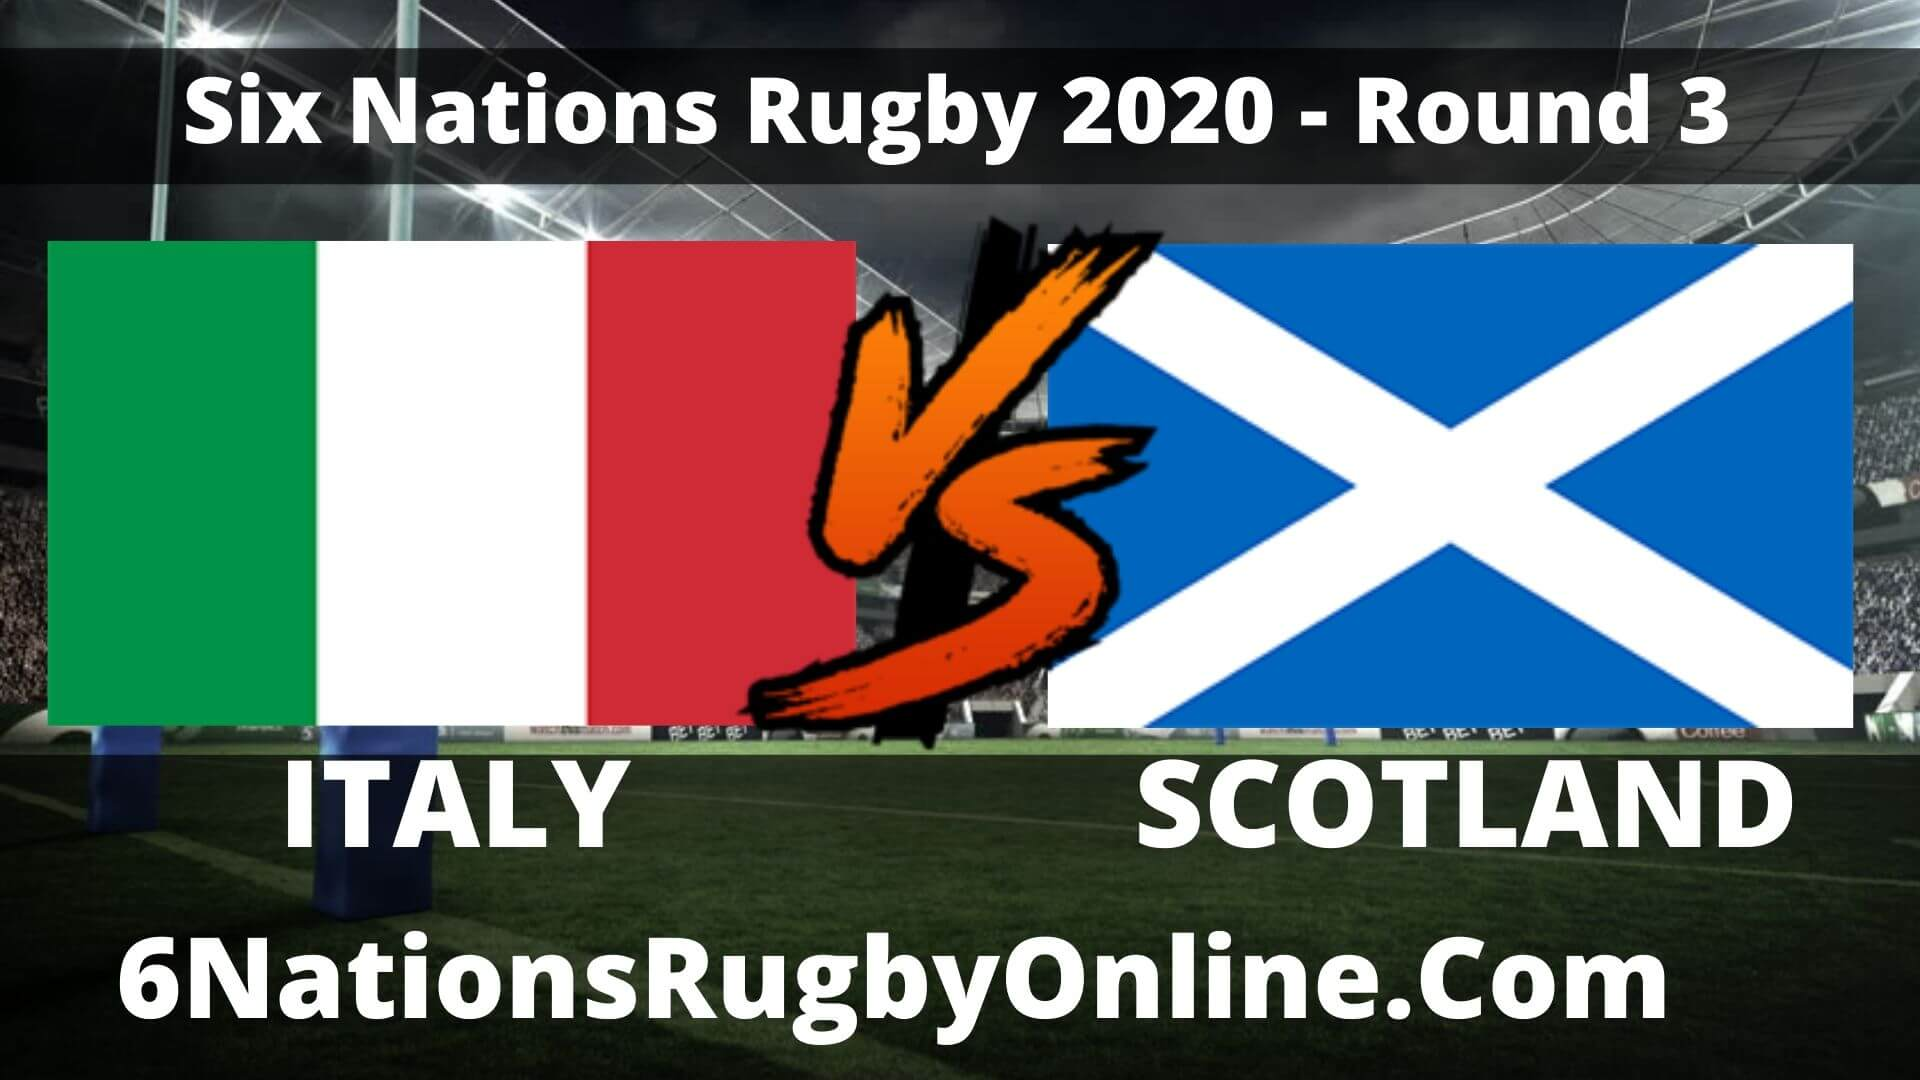 Italy vs Scotland Live Stream 2020 Round 3 | Match Replay